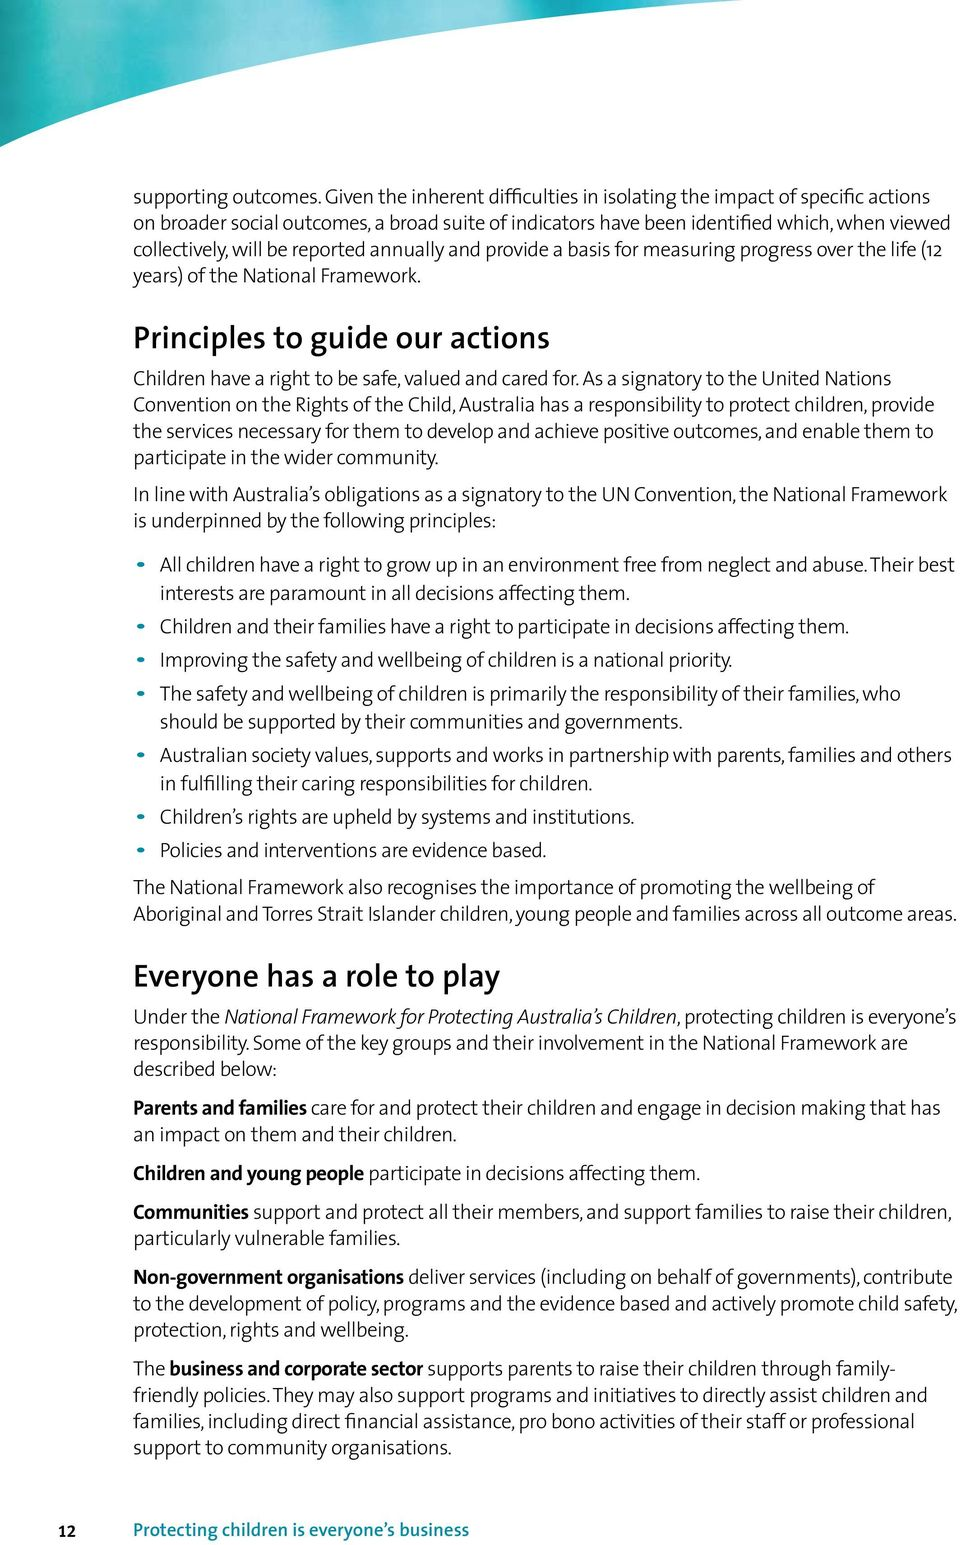 reported annually and provide a basis for measuring progress over the life (12 years) of the National Framework. Principles to guide our actions Children have a right to be safe, valued and cared for.